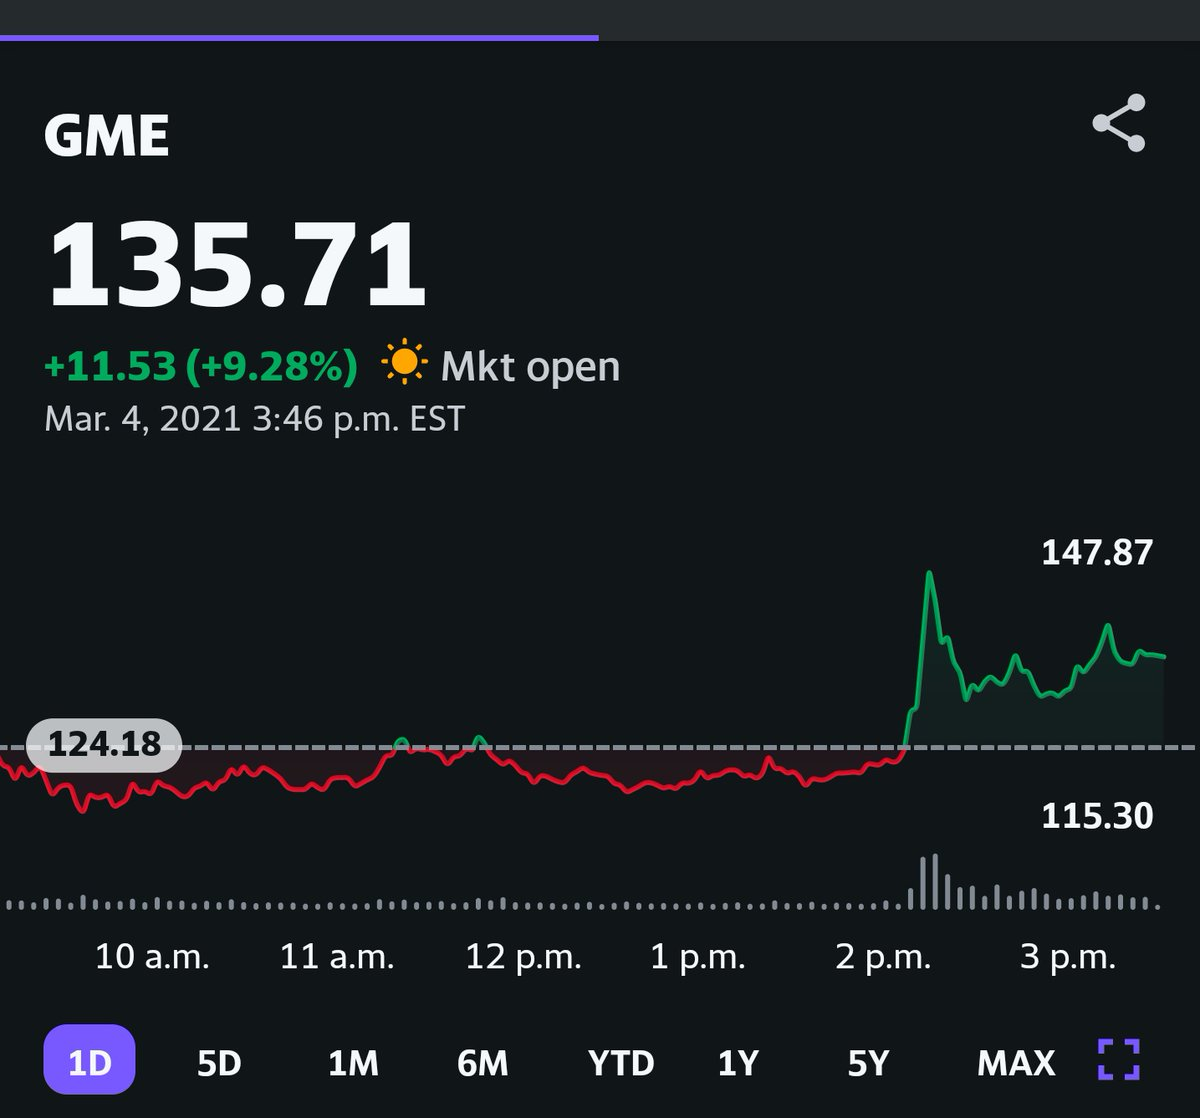 Does everyone have some $GME in their portfolios as a hedge during all this market turmoil? #gamestop